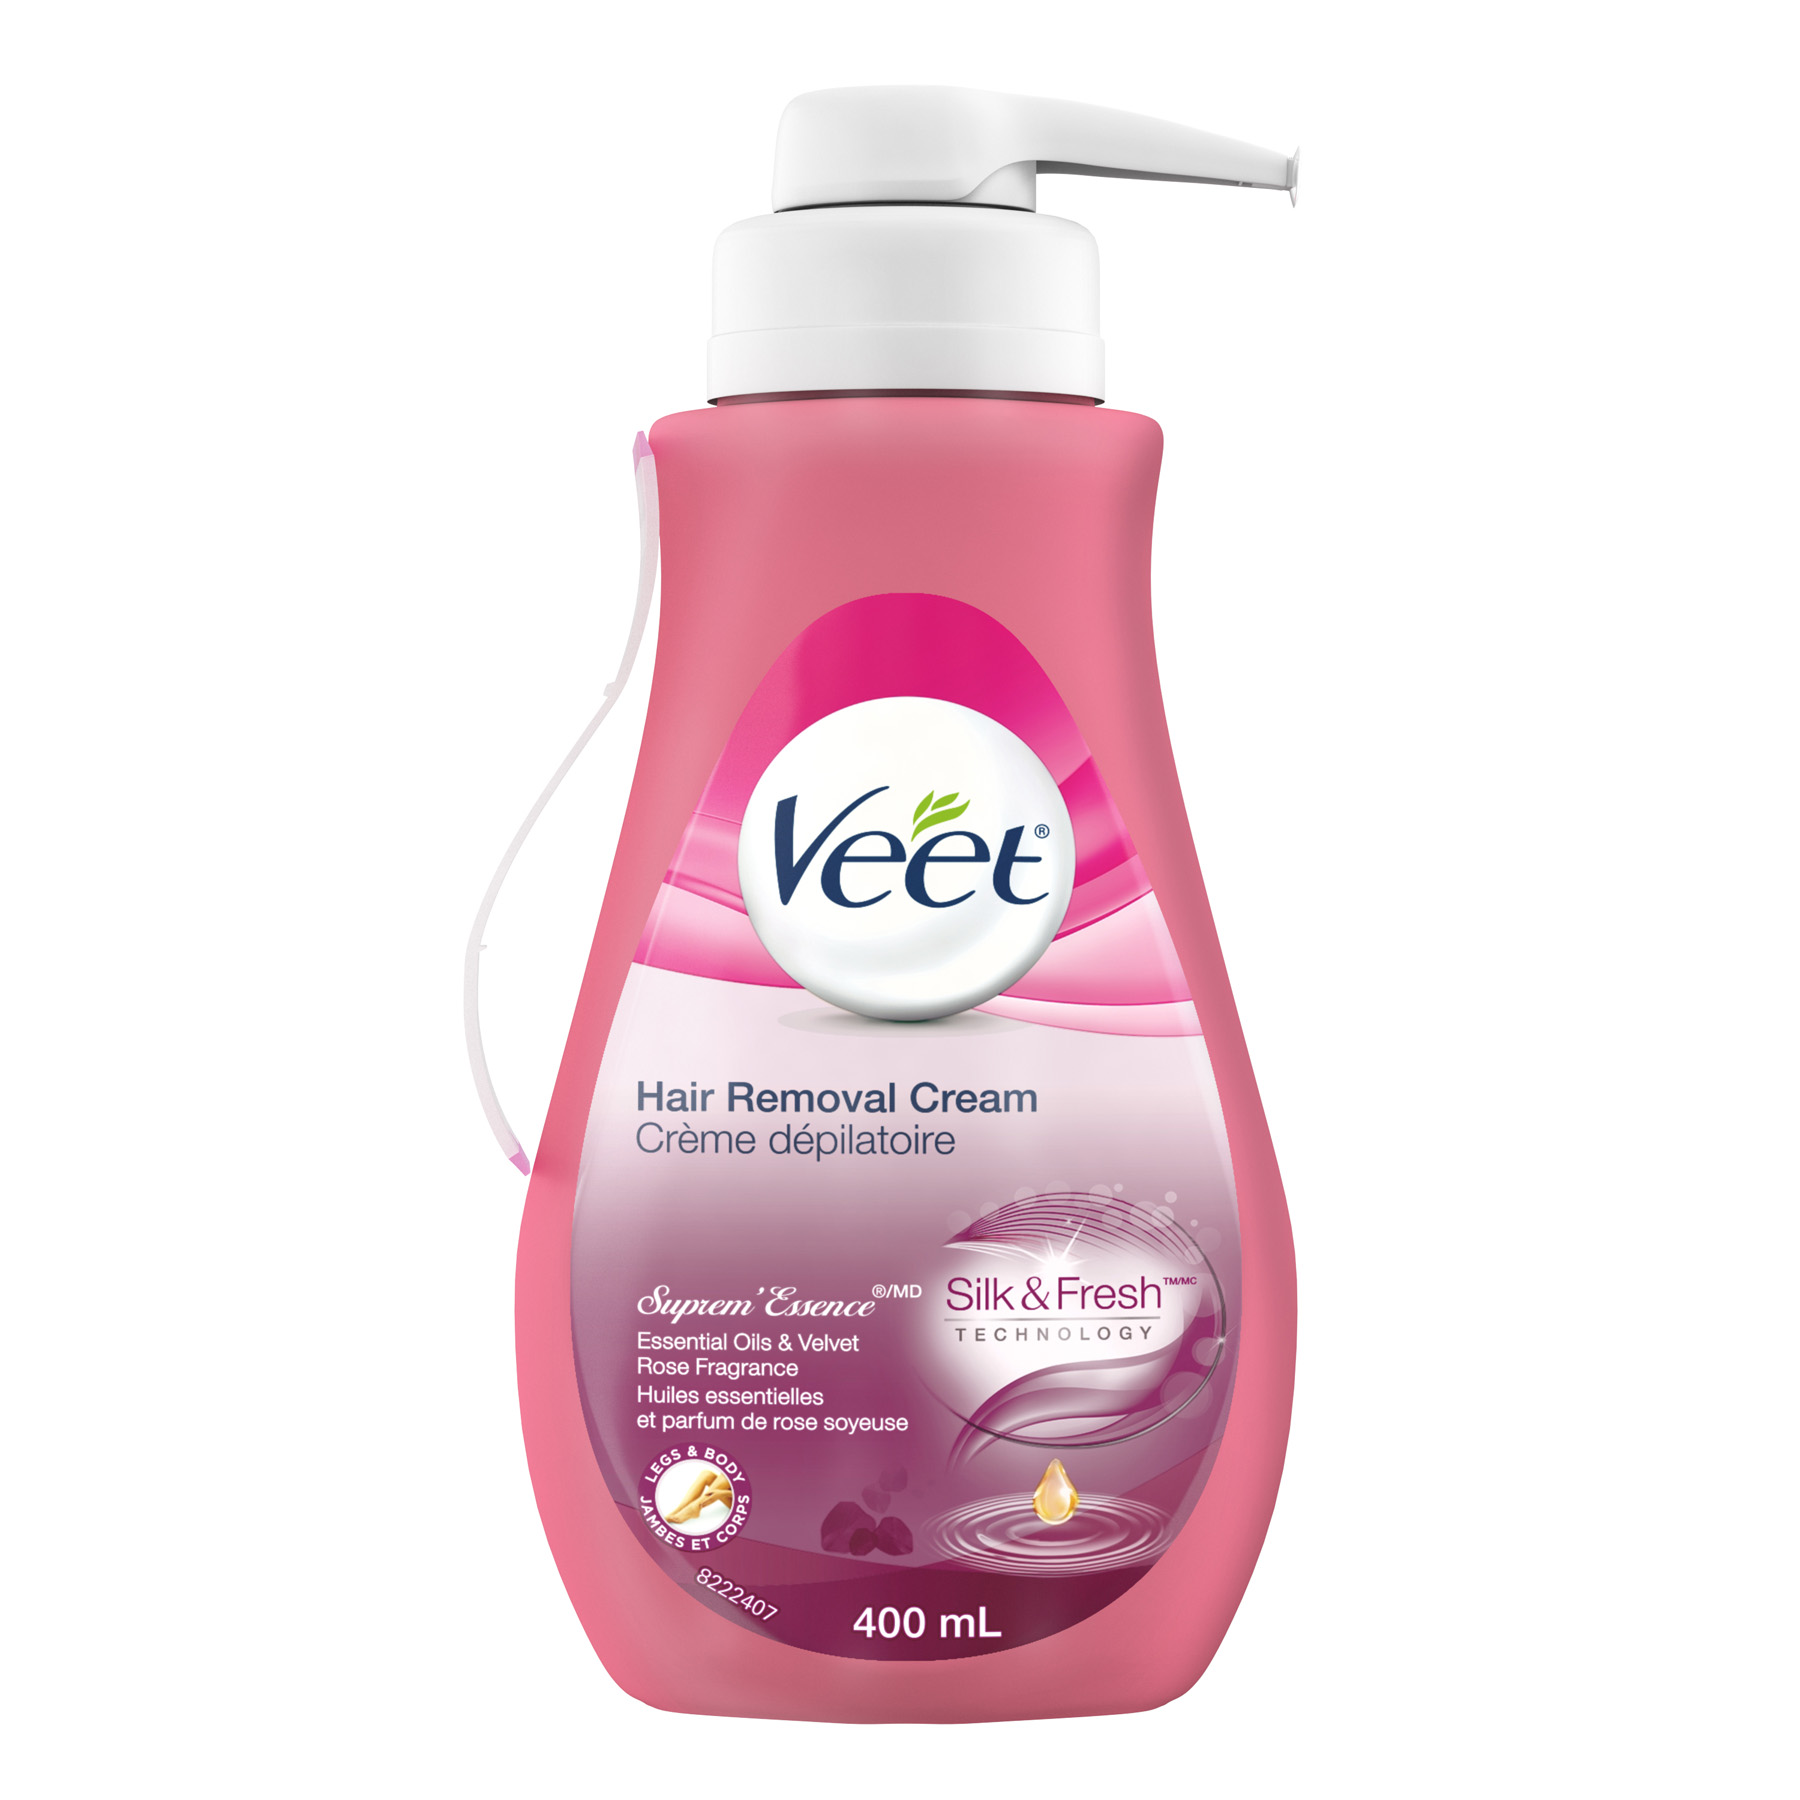 VEET Silk  Fresh Hair Removal Cream SupremEssence Canada Photo